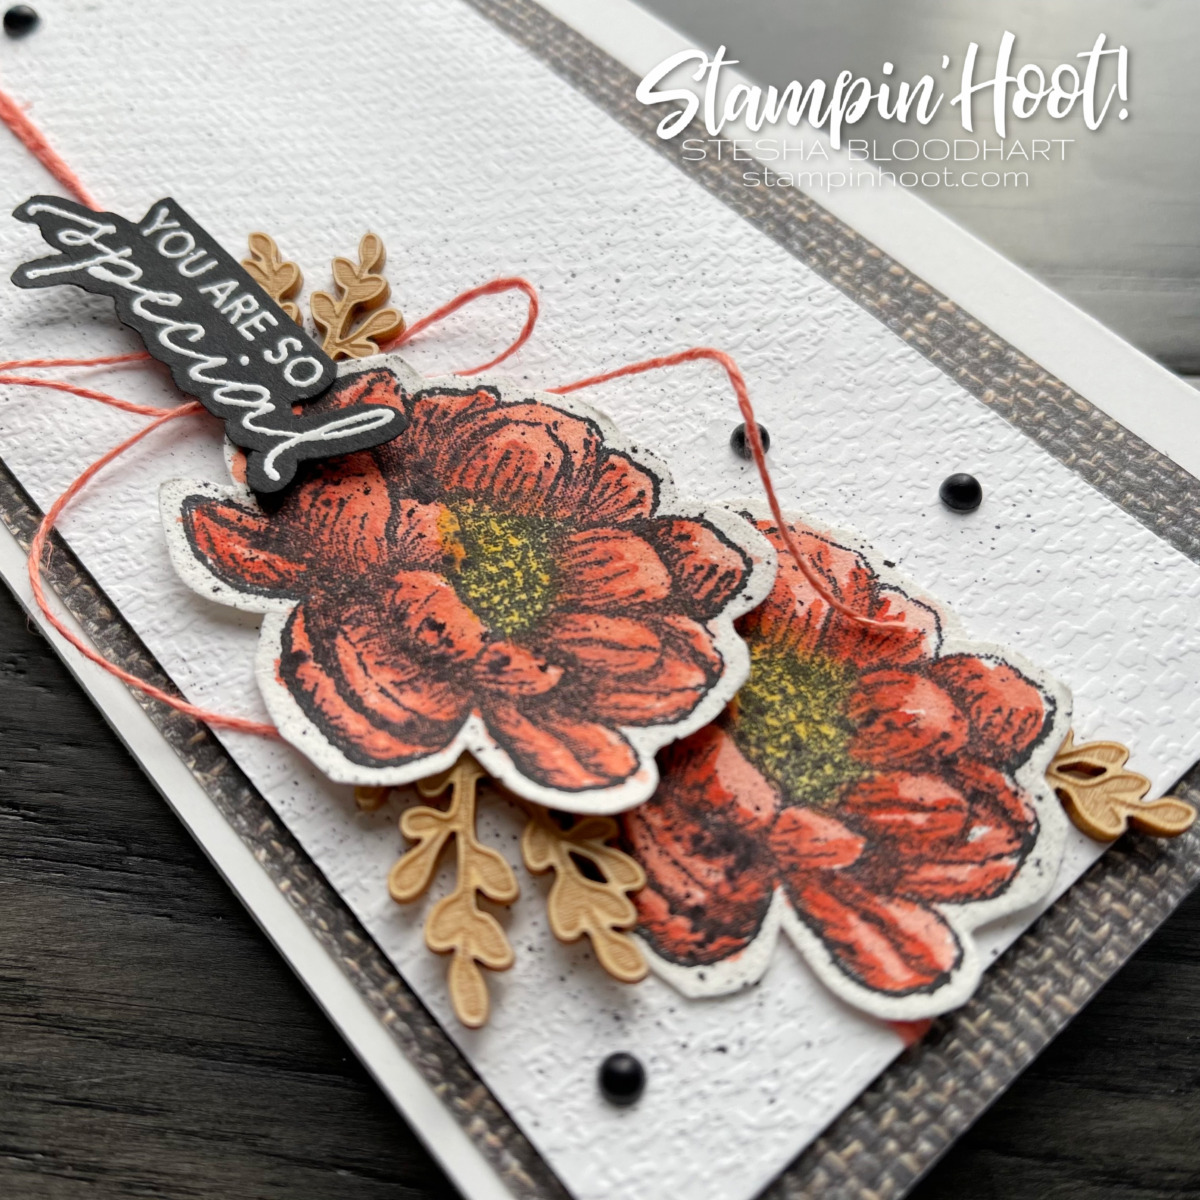 You are so special slimline card created with the Tasteful Touches Bundle from Stampin' Up! Card by Stesha Bloodhart, Stampin' Hoot! Flowers